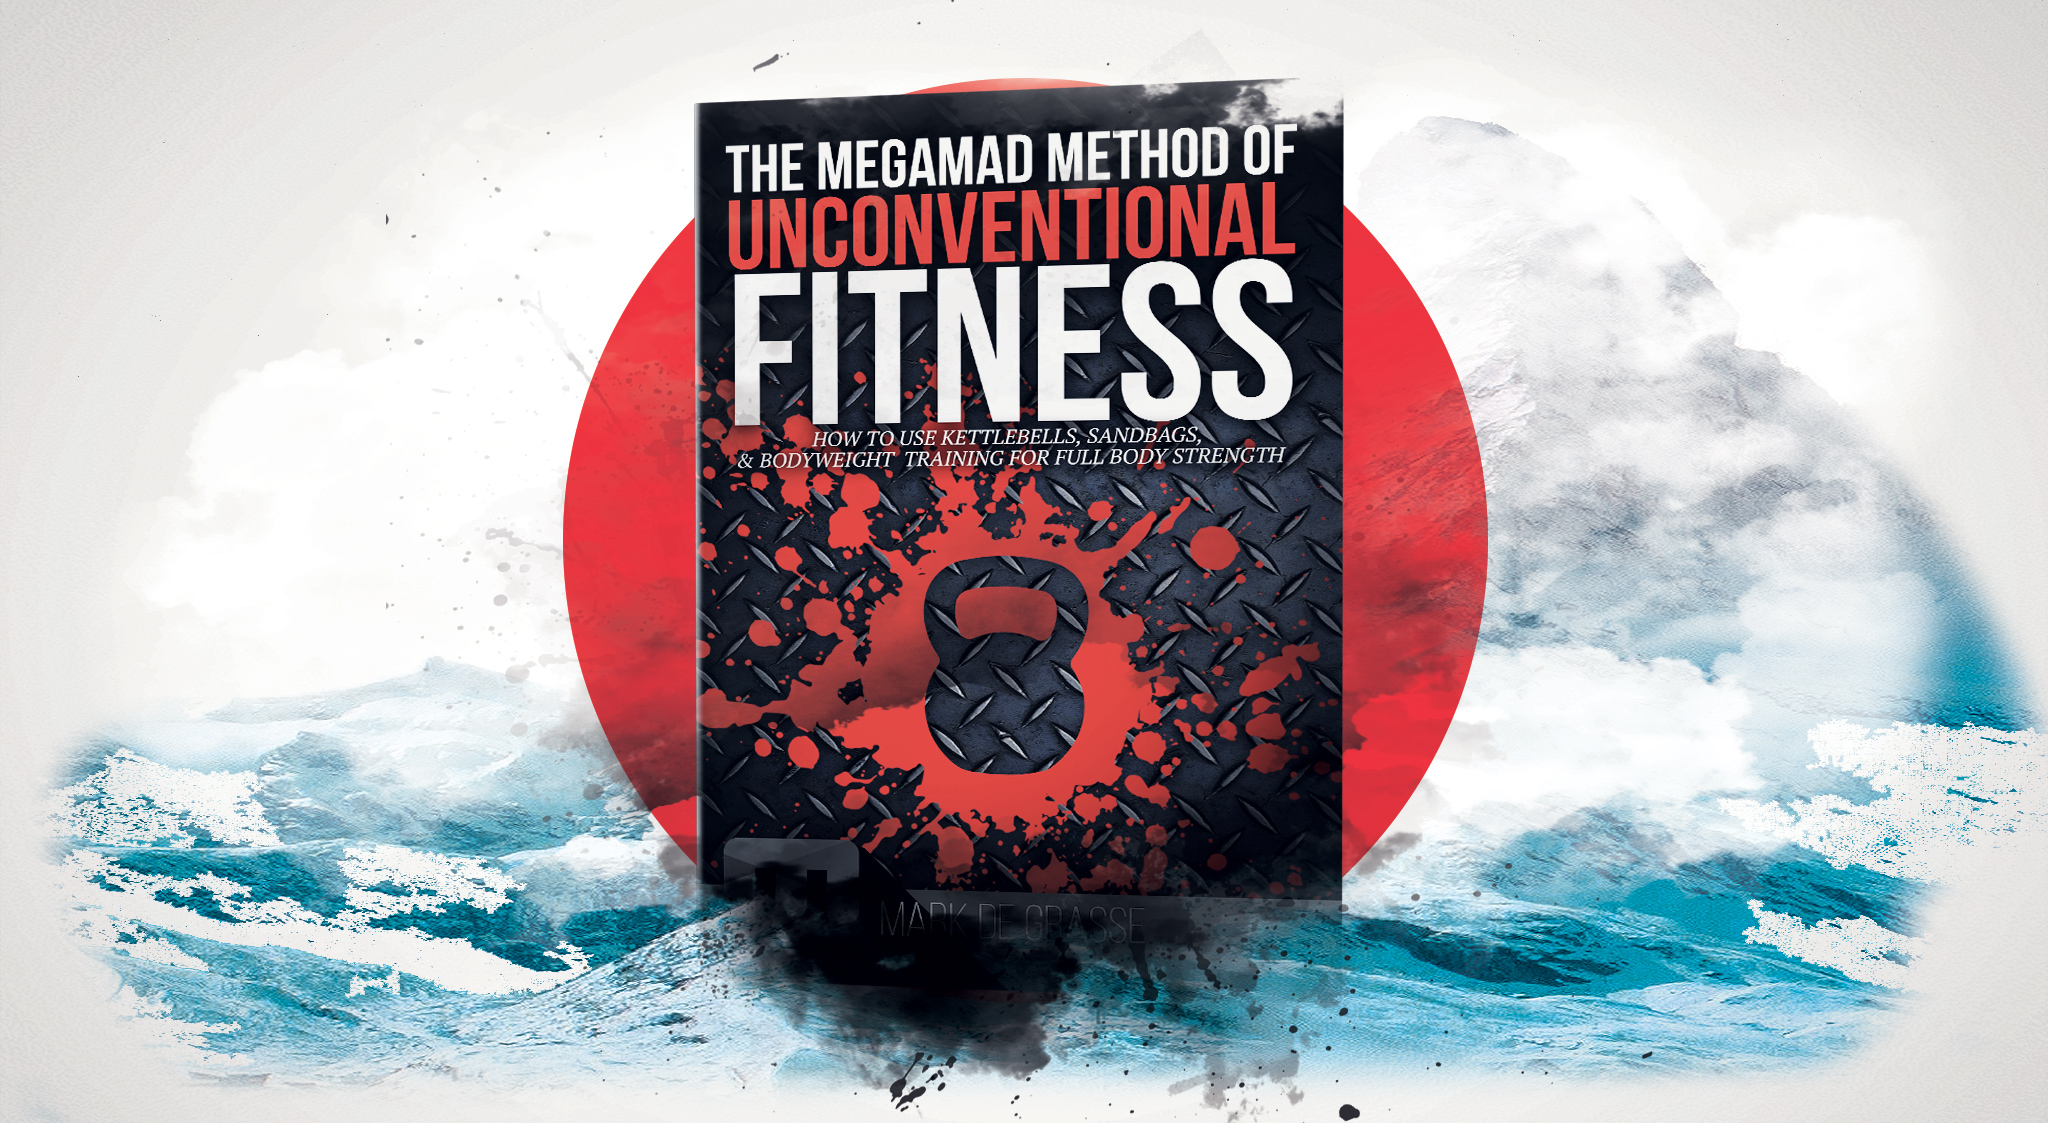 MegaMad Method of Unconventional Fitness